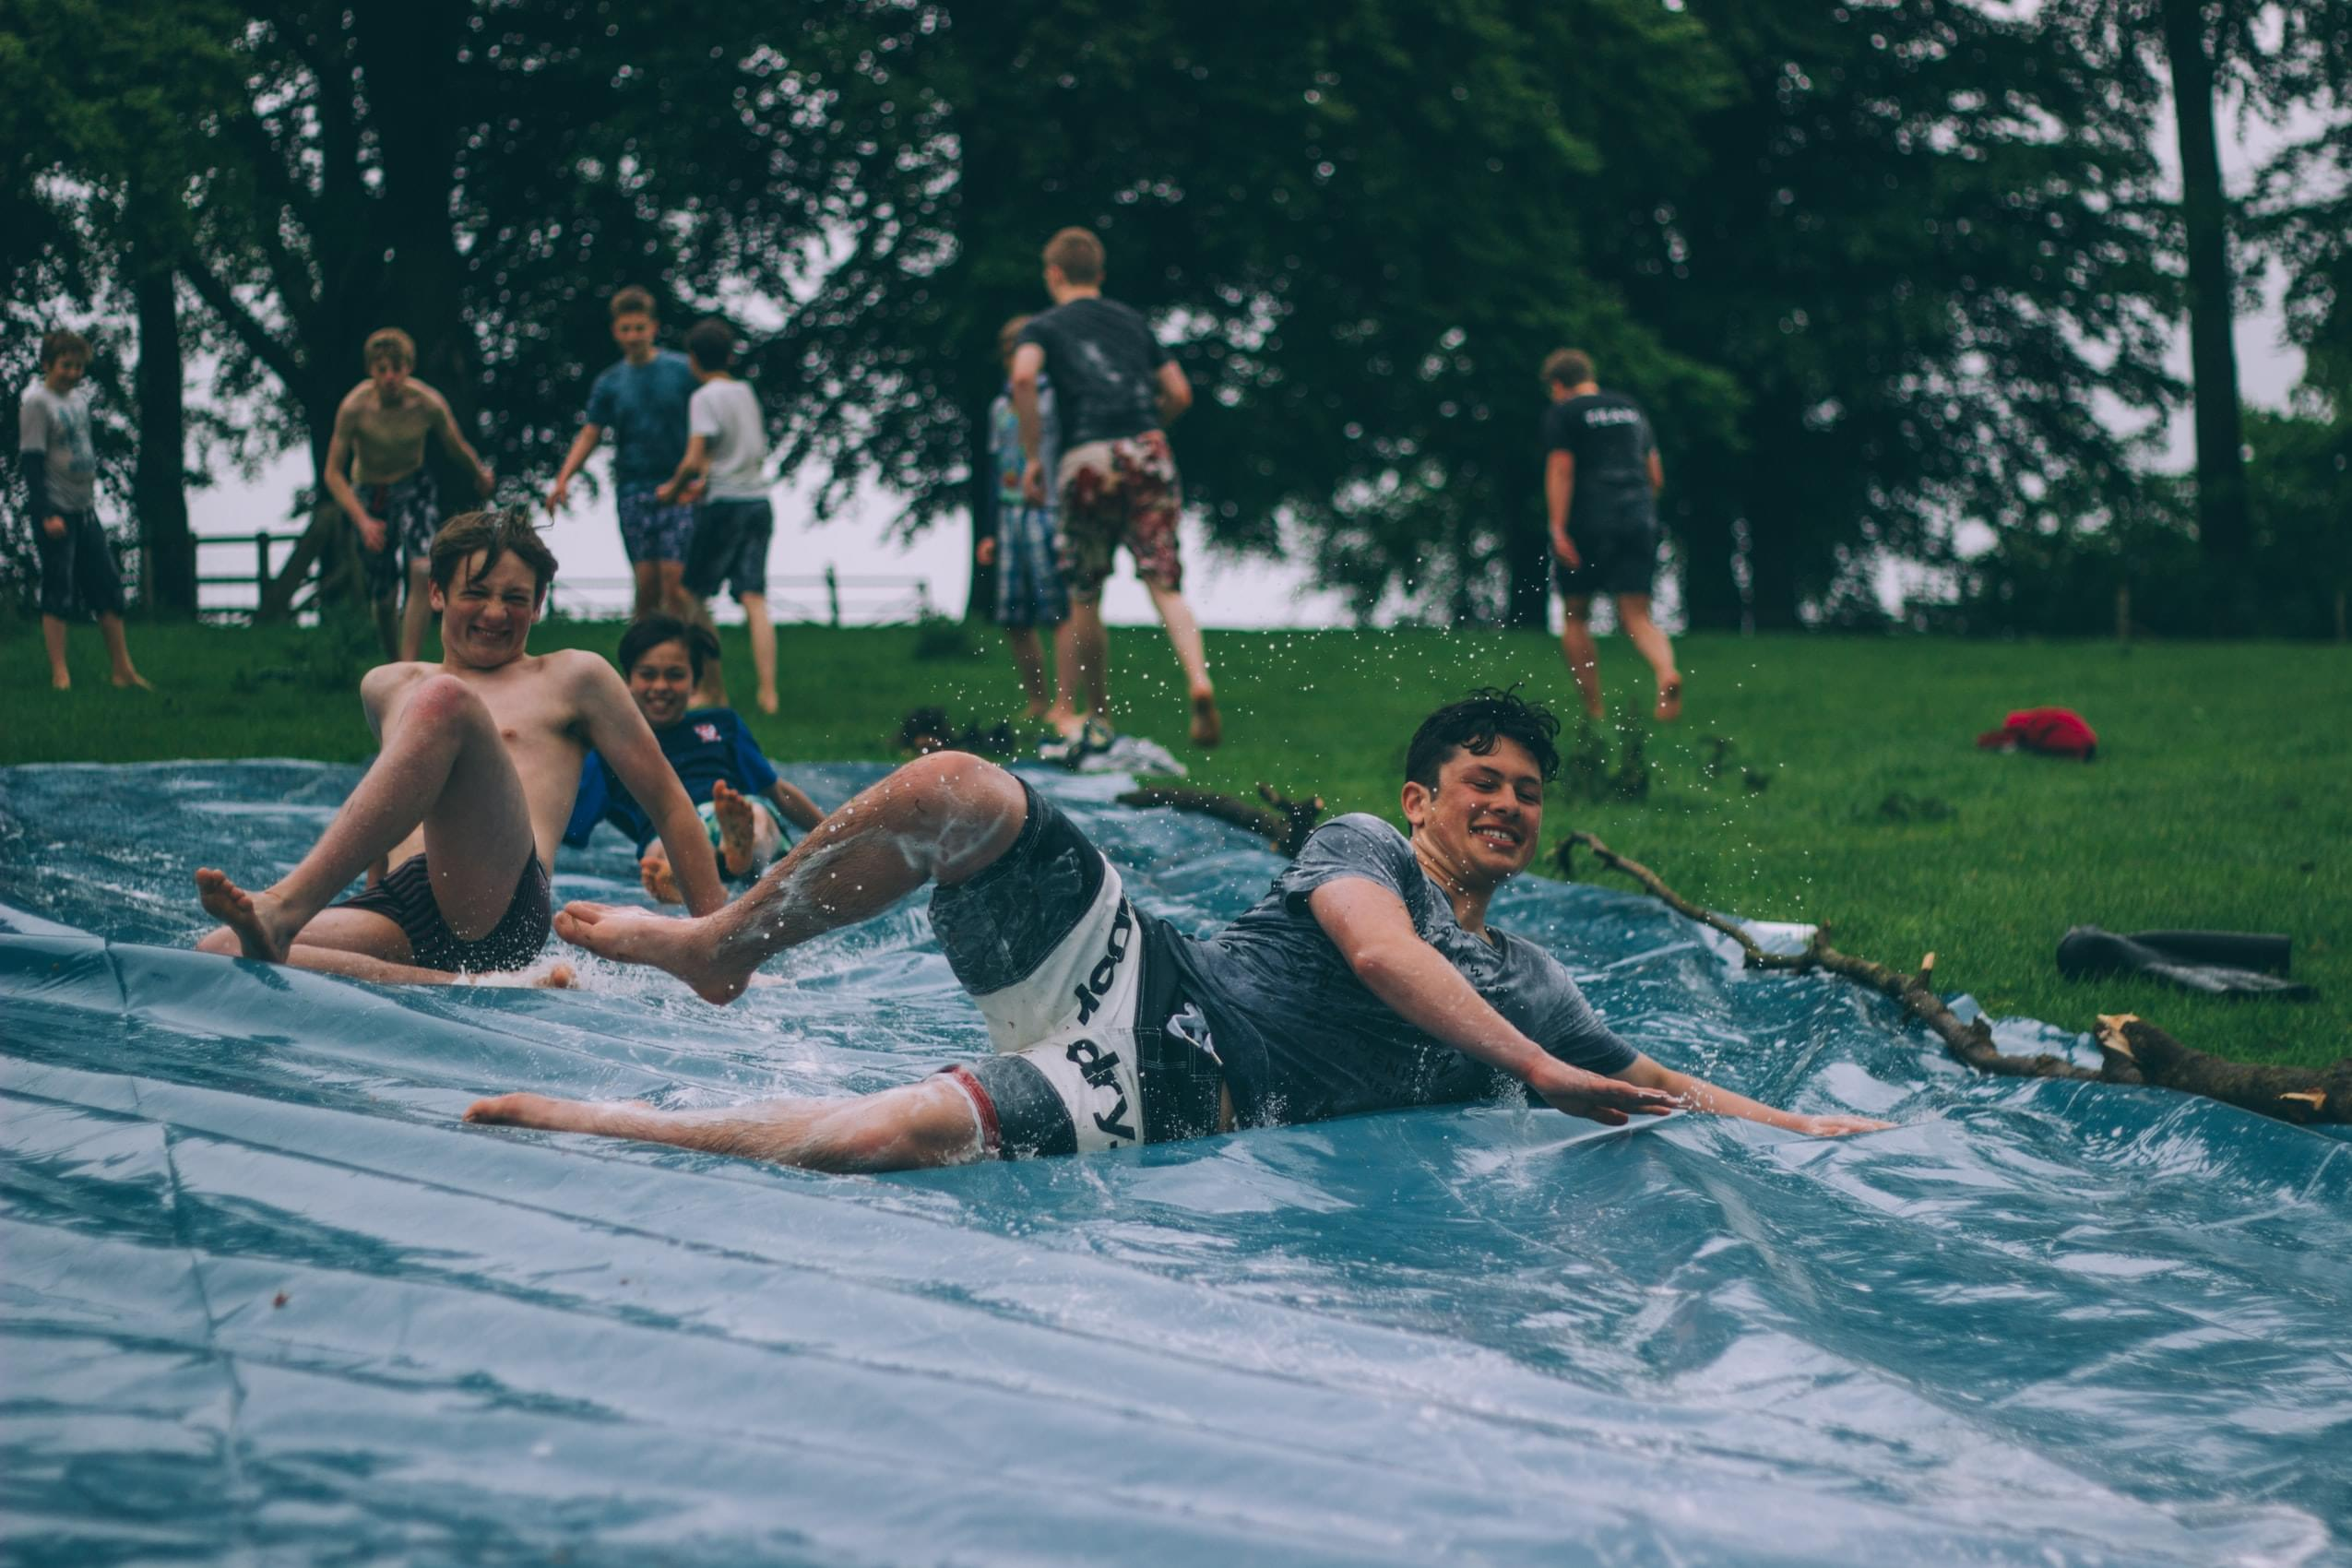 Slip 'N Slides have completely SOLD OUT